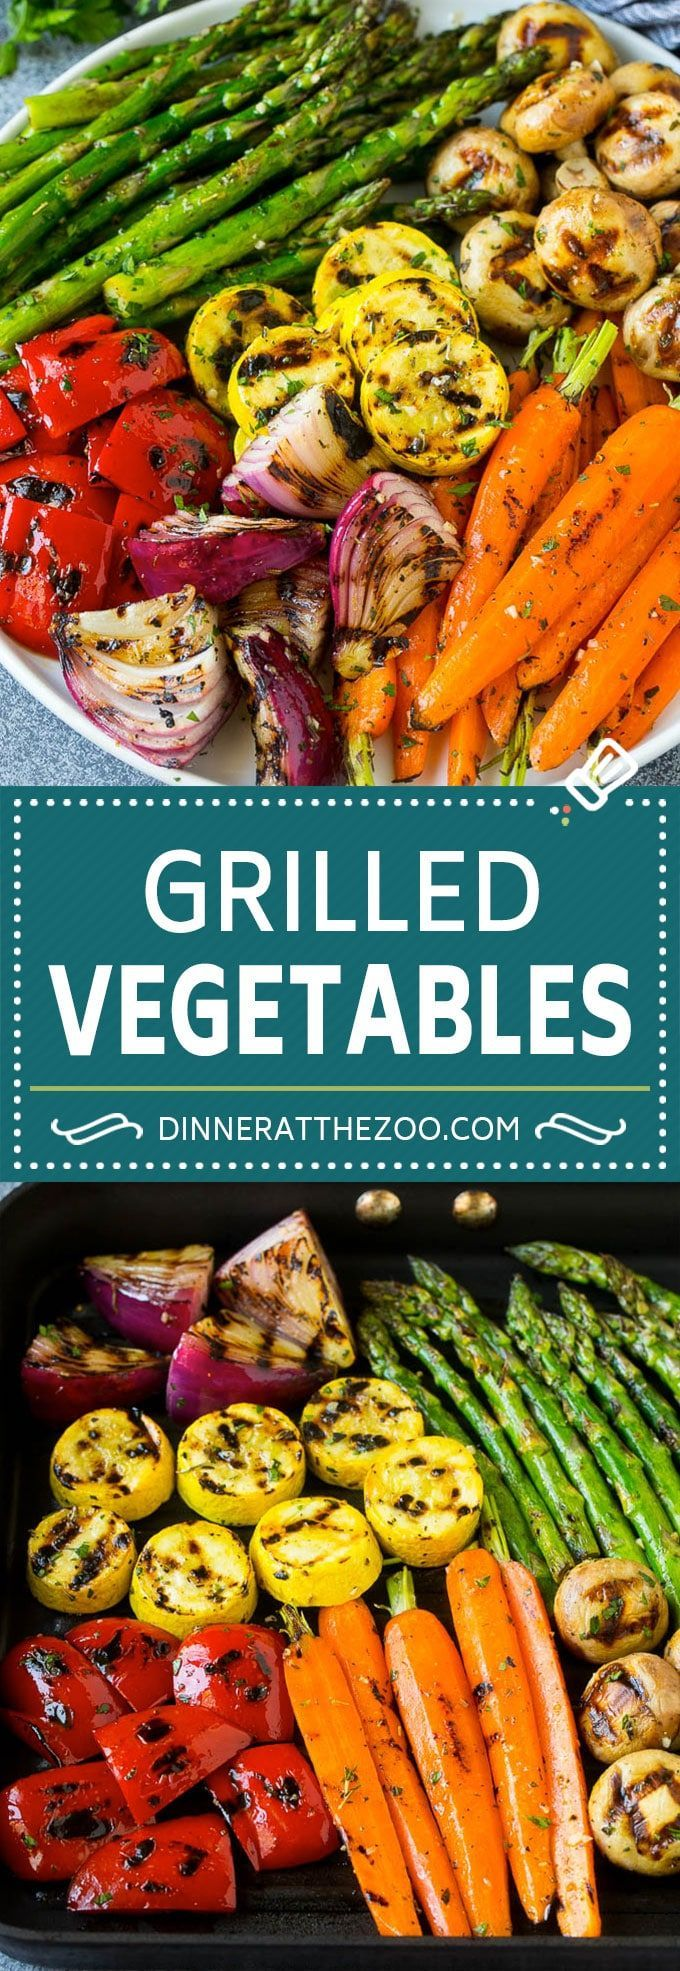 Grilled Vegetables - Dinner at the Zoo - Welcome!